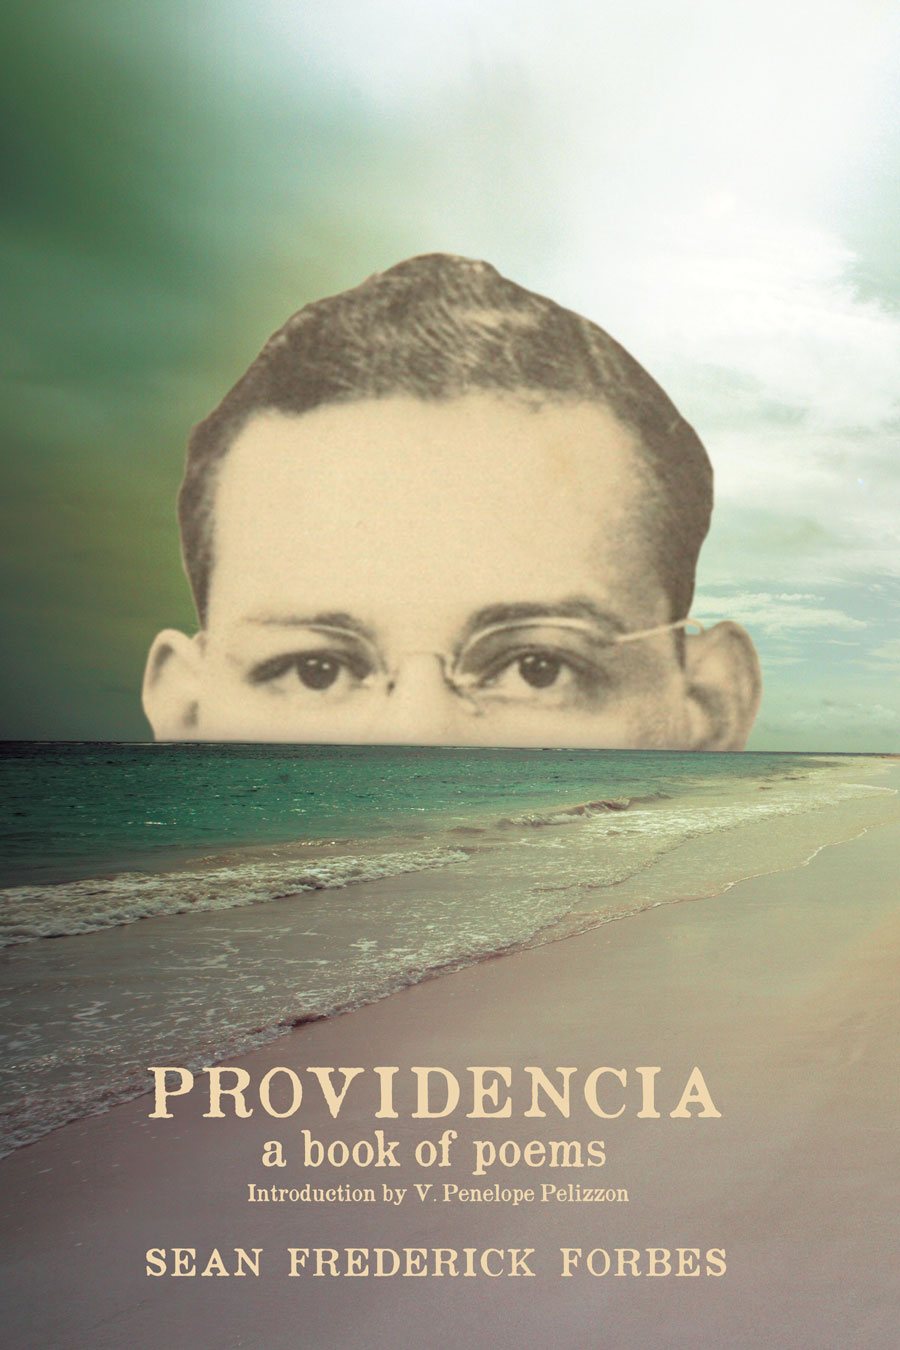 2Leaf Press Publishes Sean Frederick Forbes' Debut Poetry Collection, PROVIDENCIA